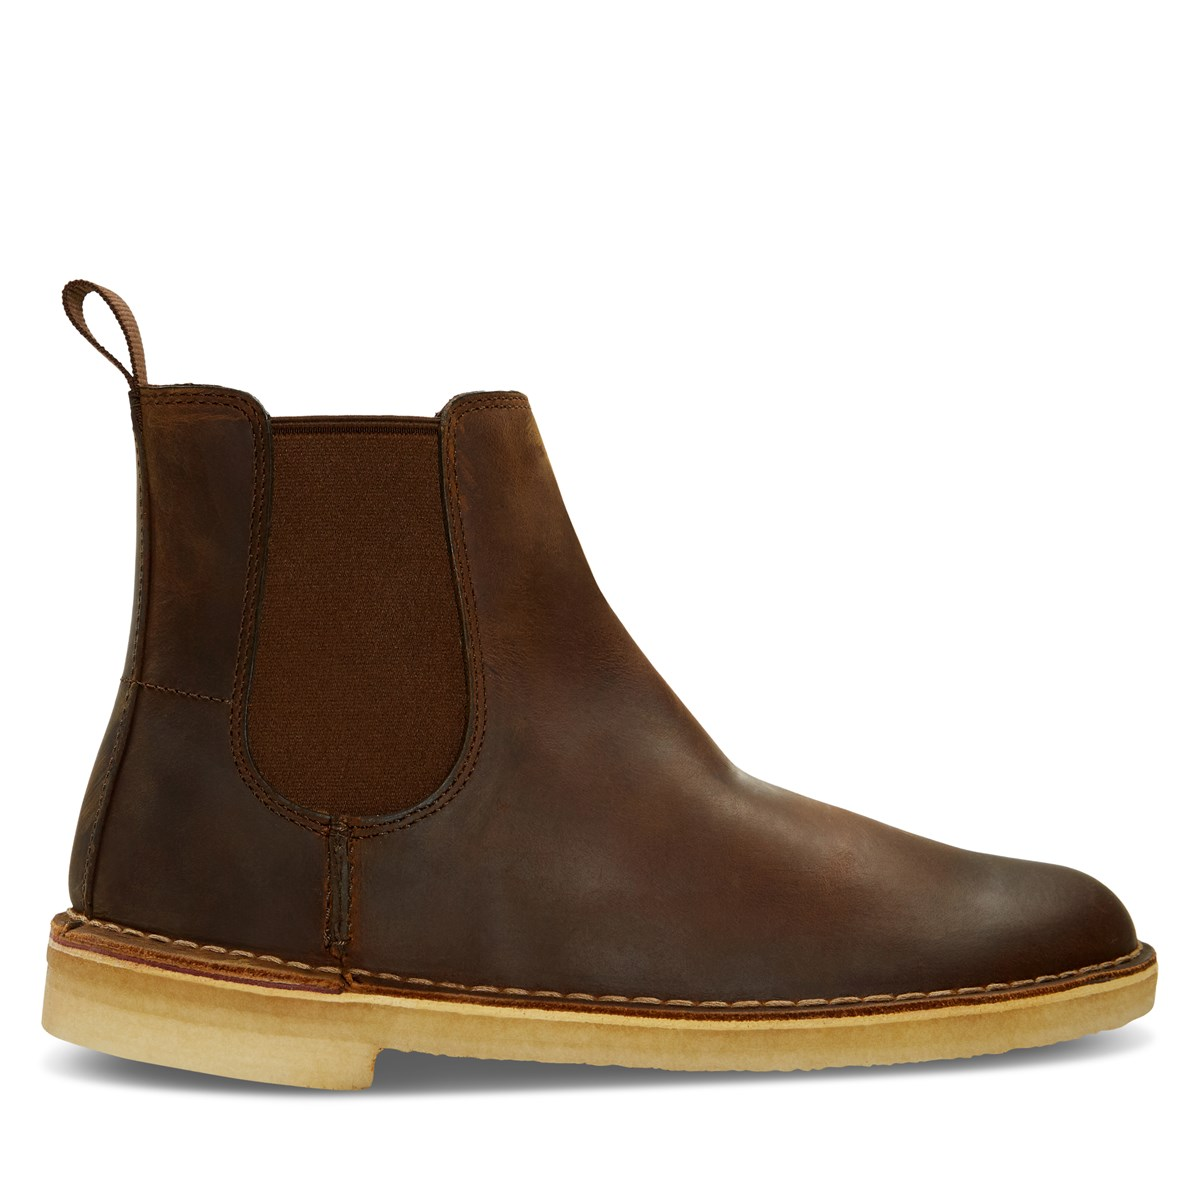 83d04359825 Men s Desert Peak Chelsea Boots in Brown